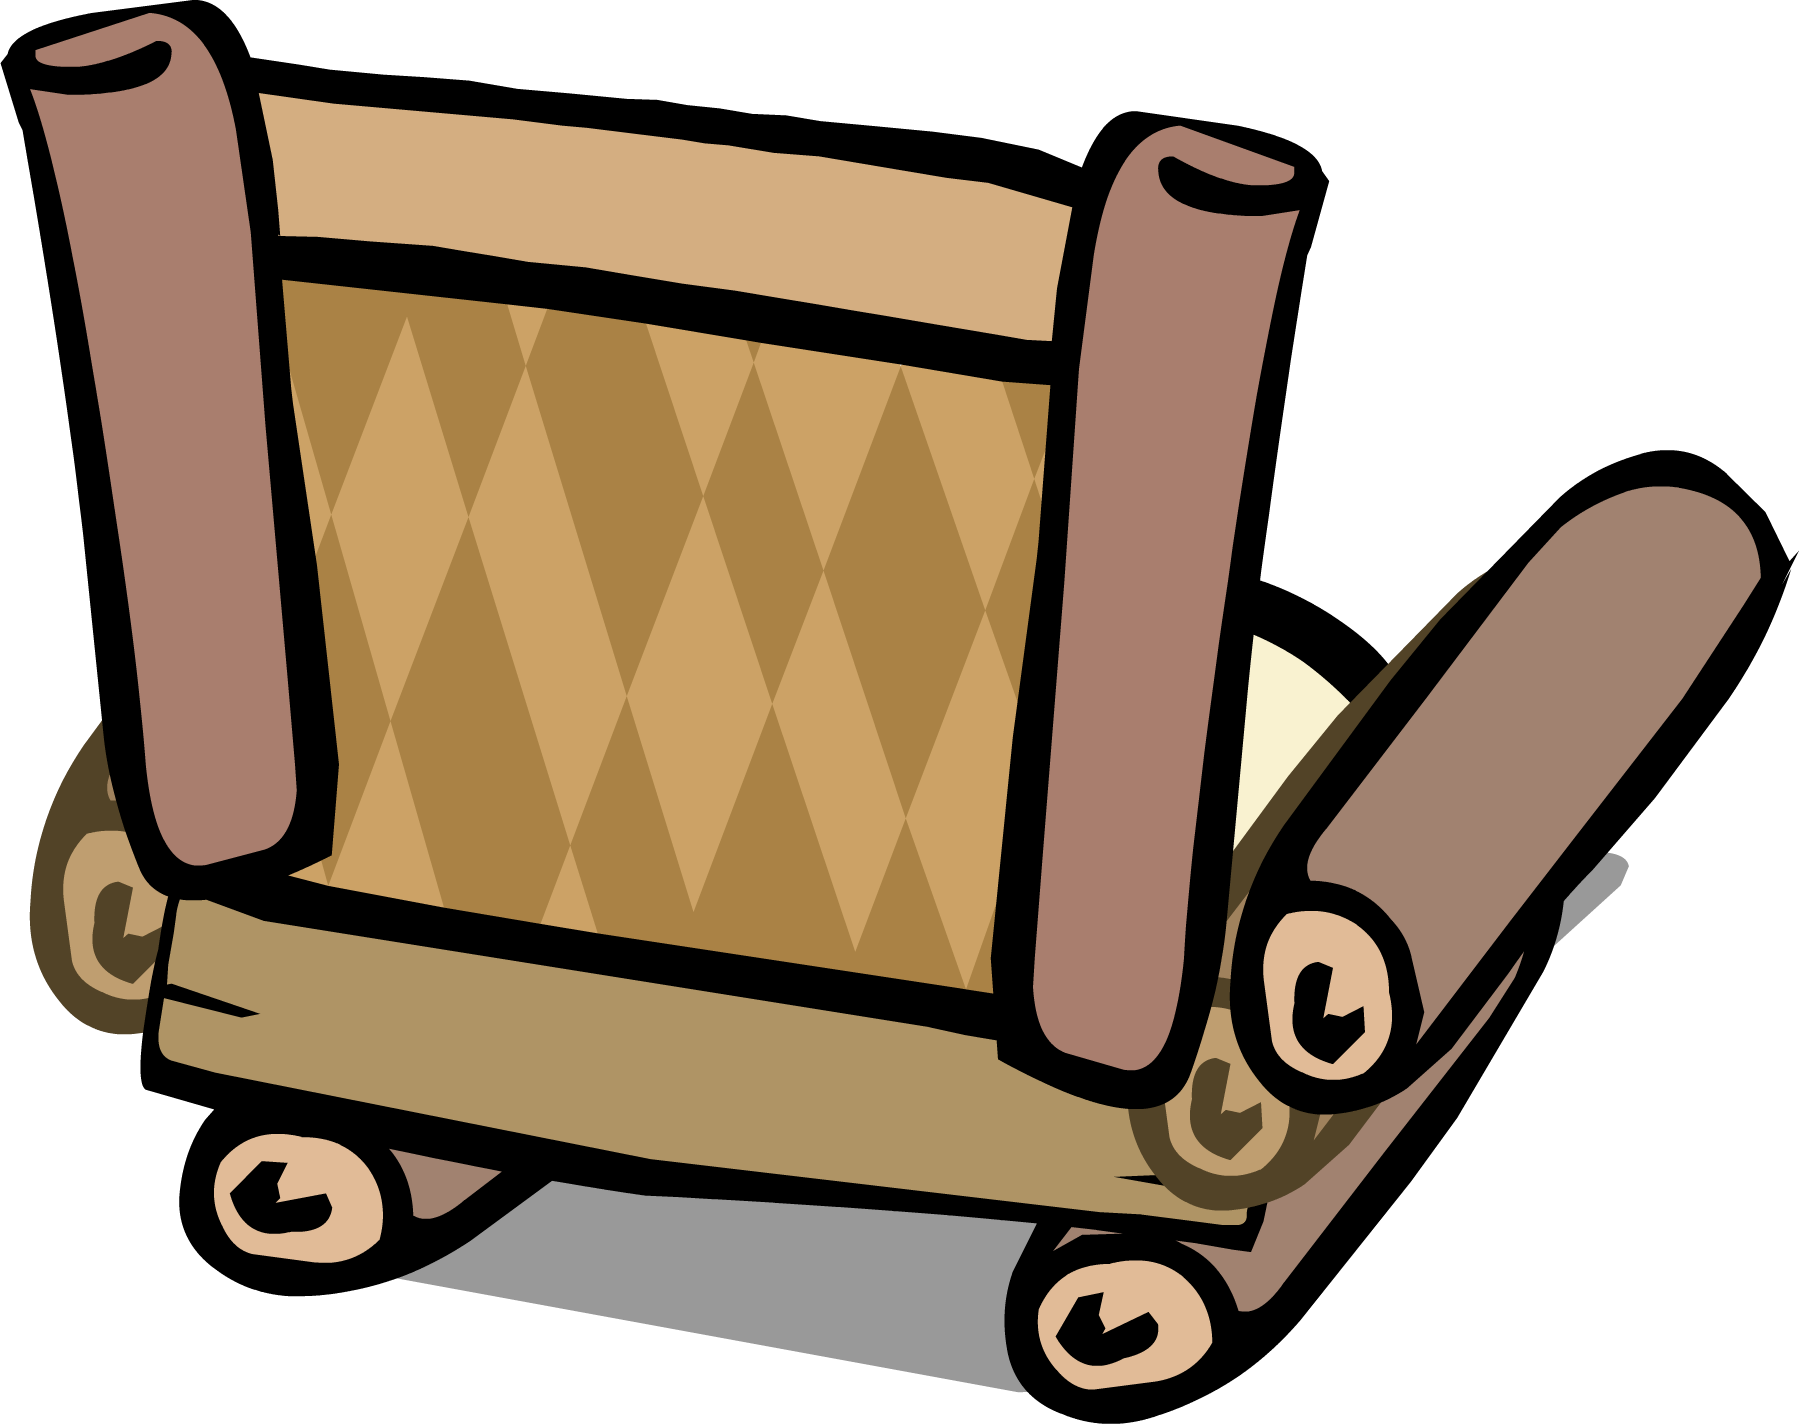 Clipart chair bamboo chair. Image sprite png club